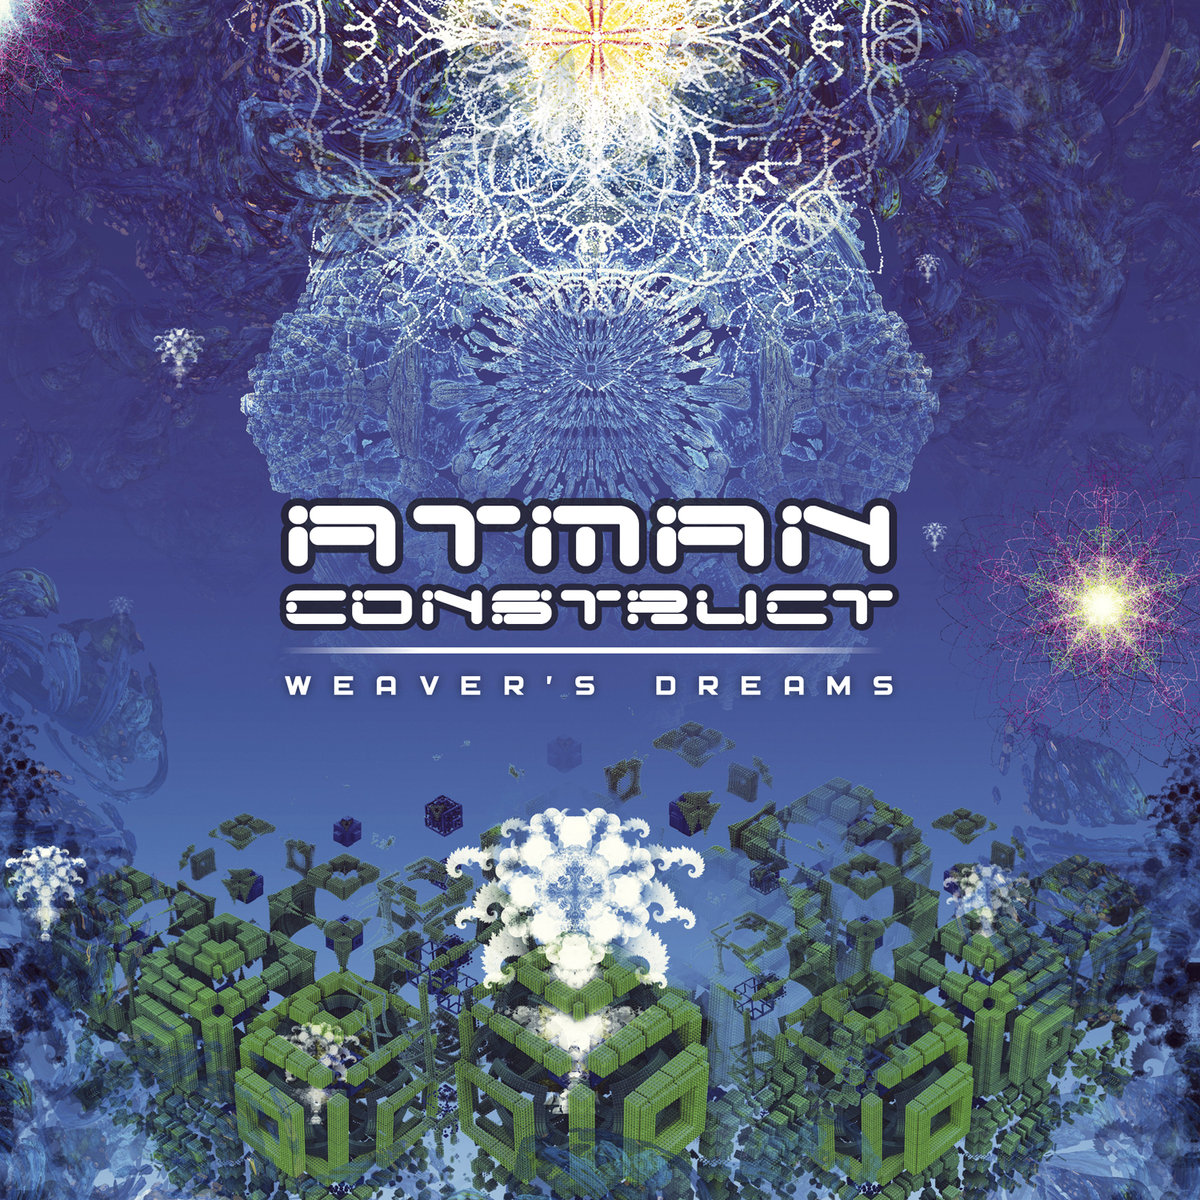 Atman Construct - Weaver's Dreams @ 'Weaver's Dreams' album (electronic, united kingdom)